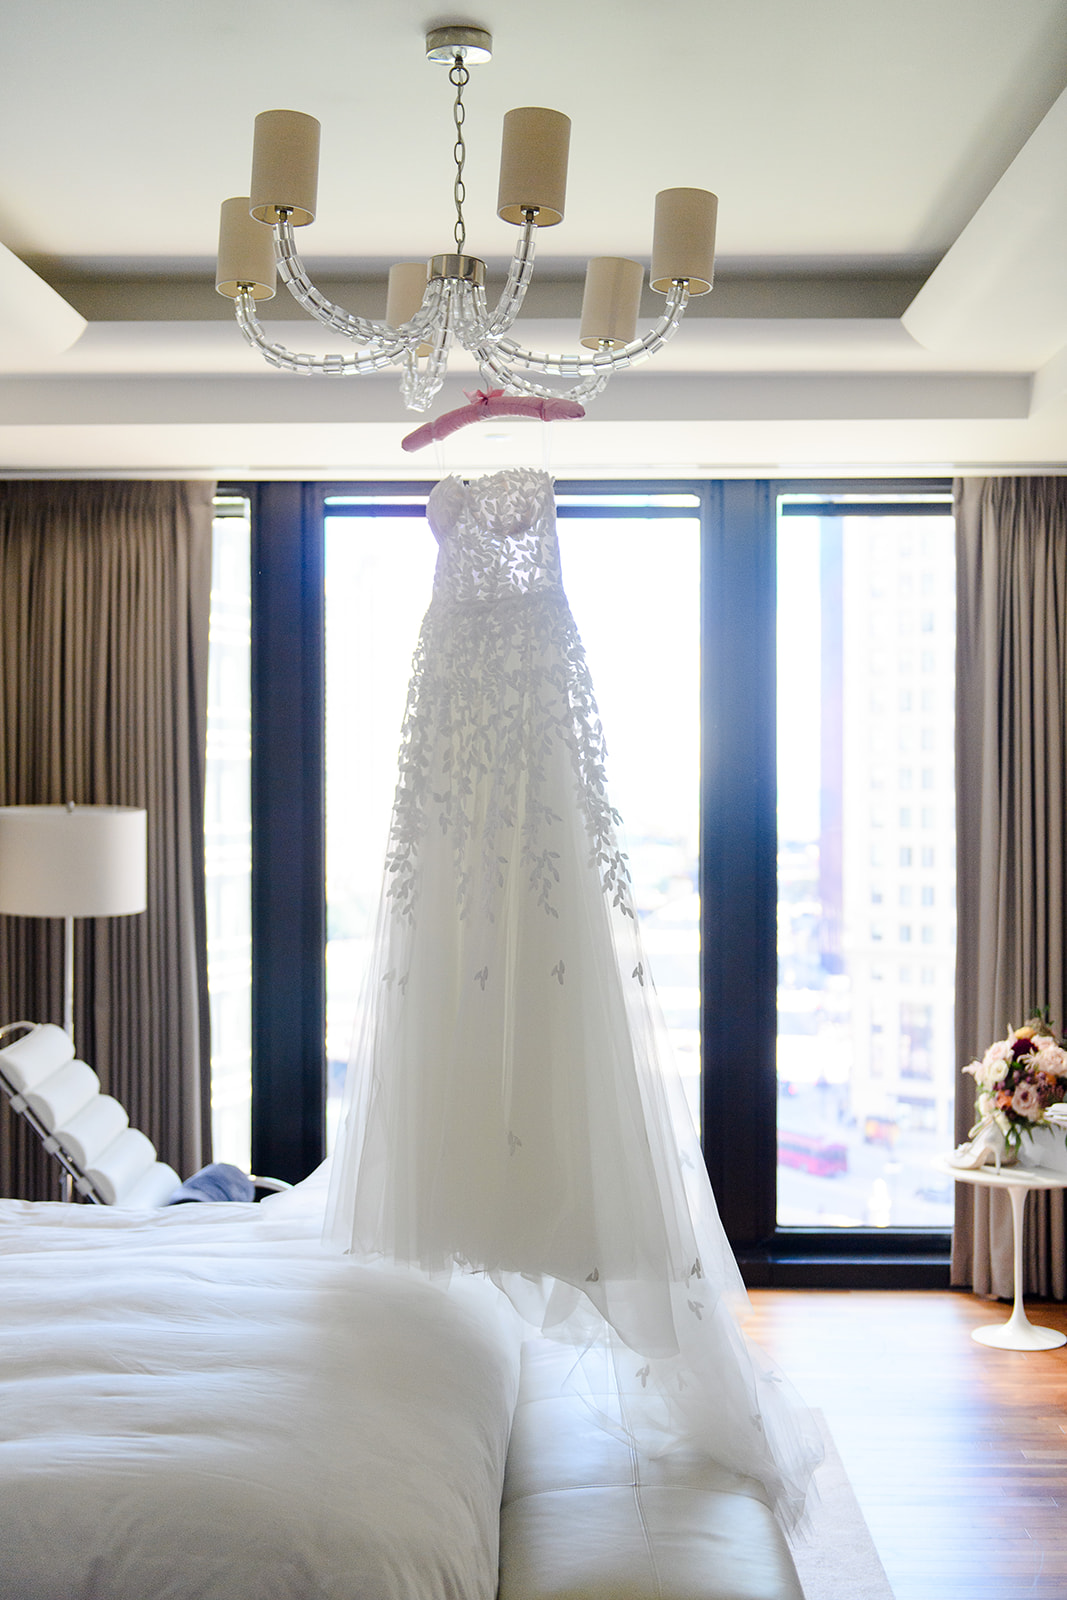 """Chandeliers, candles, lush and textured Fall floral, rows of tress, and a warm cozy loft. Sarah got exactly what she always dreamt of for her wedding...at least according to her mom's memory of her childhood wedding drawings """"with all the chandeliers!"""" Bridgeport Art Center's Sculpture Garden Venue provided the perfect loft space and attached outdoor ceremony courtyard."""